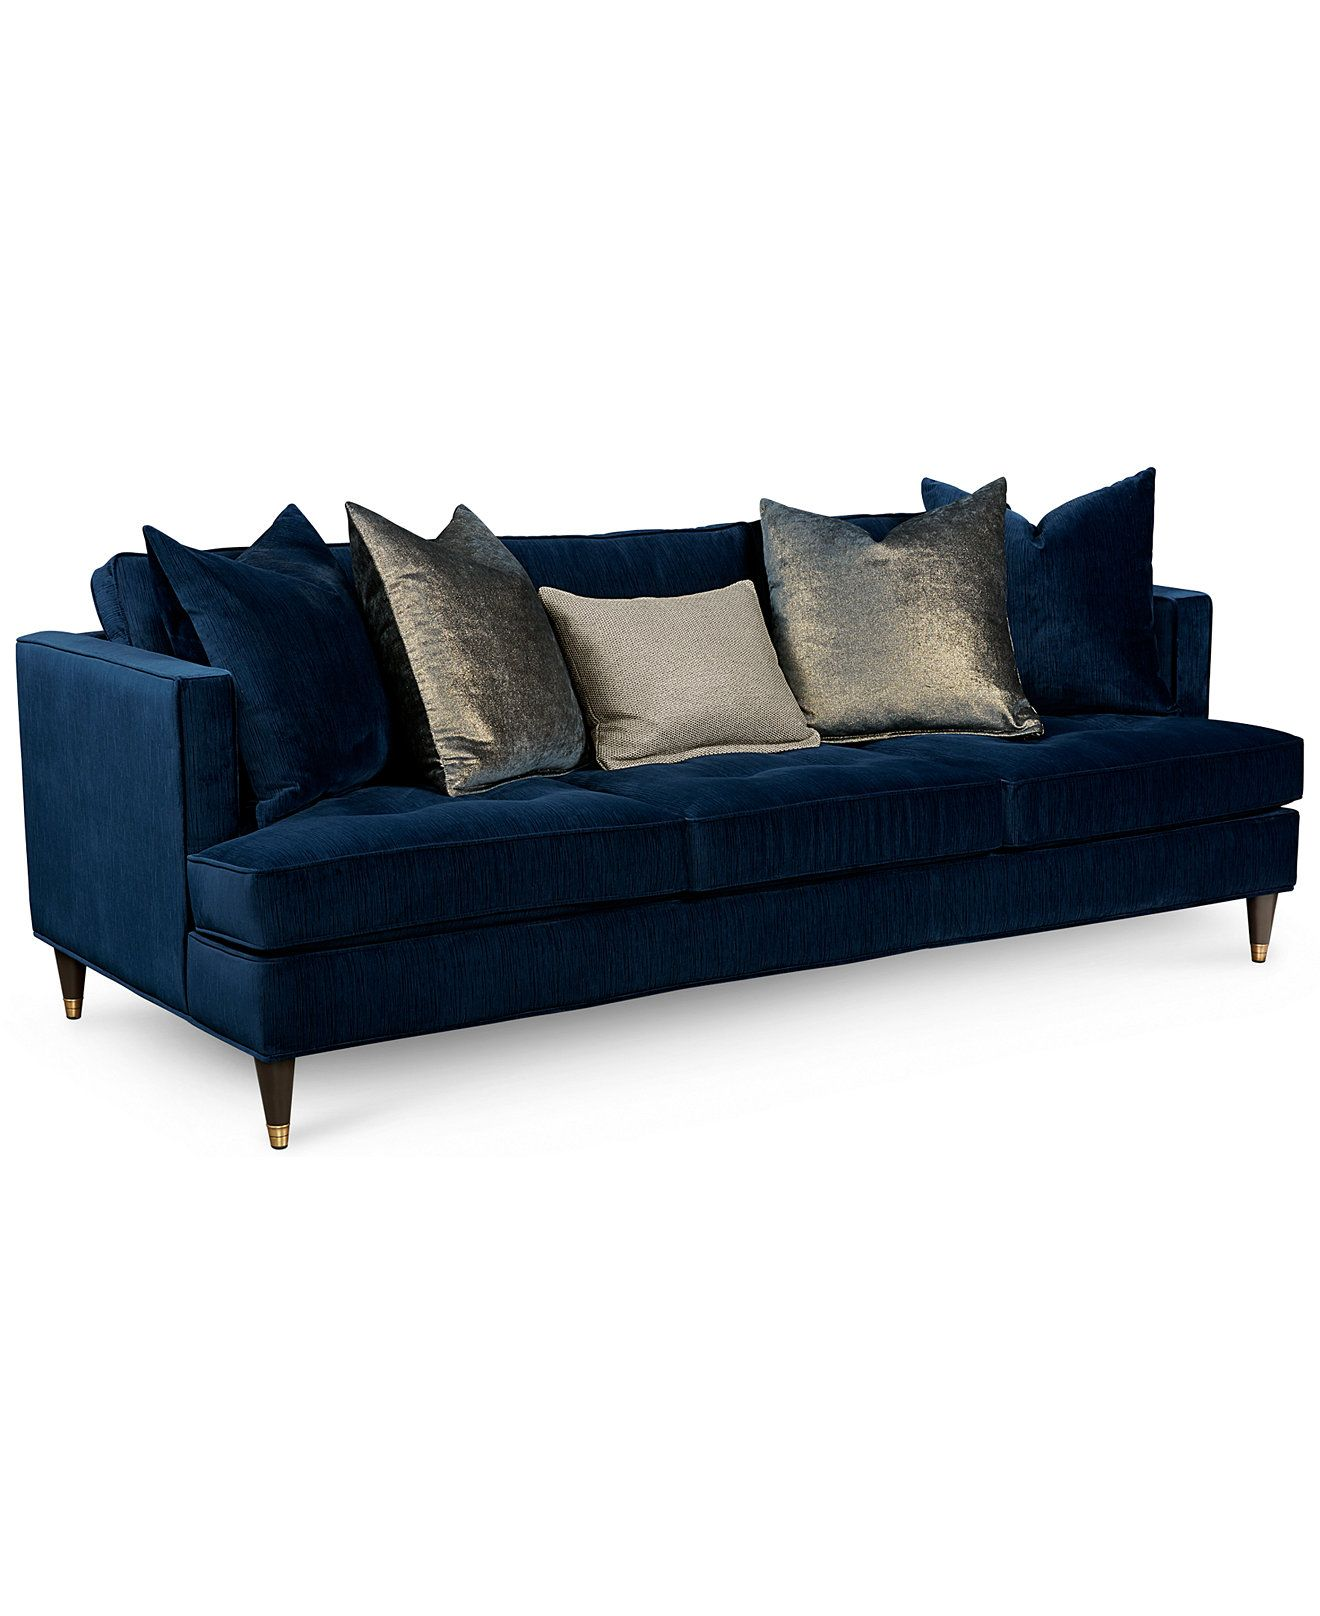 Macy S Furniture Sale Couches: Couches & Sofas